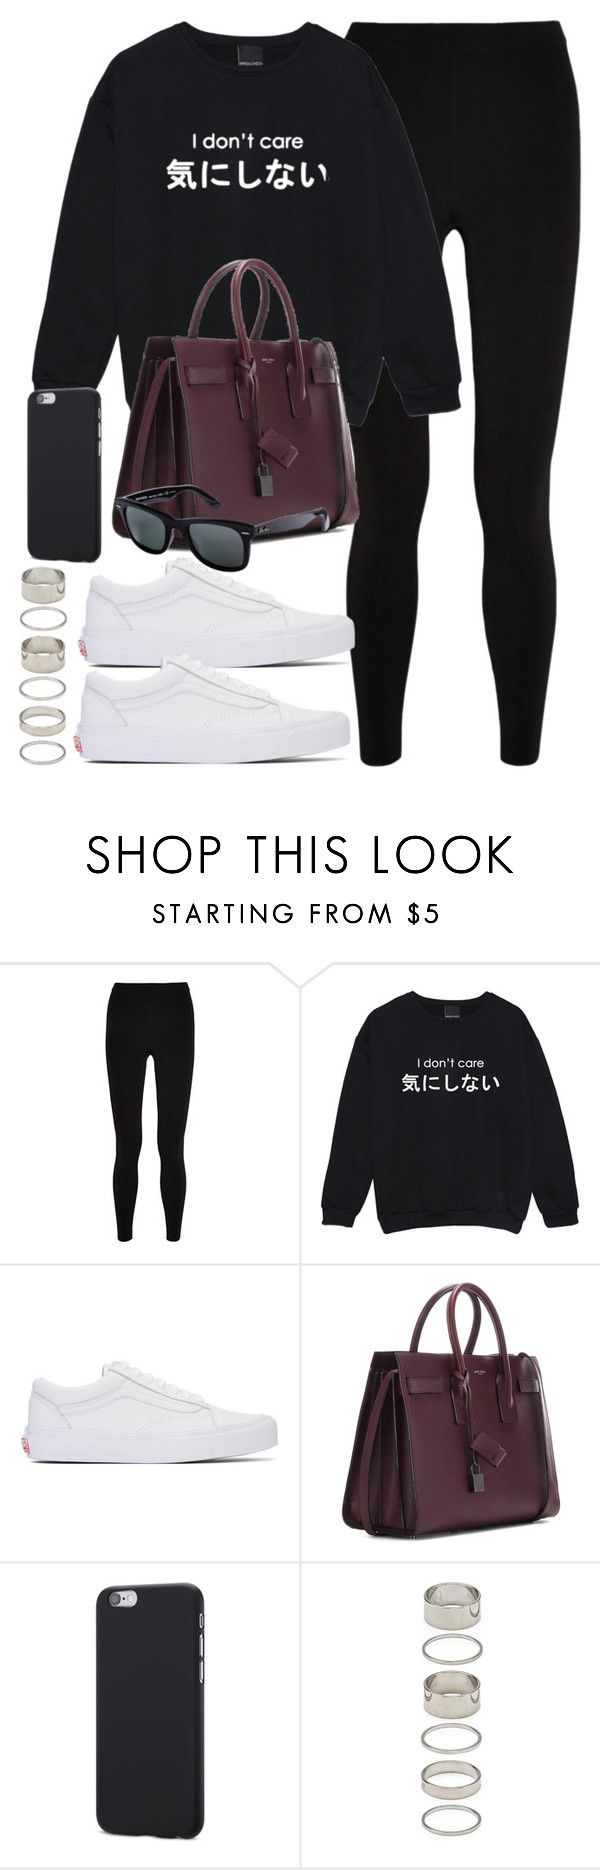 """Style #11365"" by vany-alvarado ❤ liked on Polyvore featuring T By Alexander Wang, Vans, Yves Saint Laurent, Ray-Ban and Forever 21"